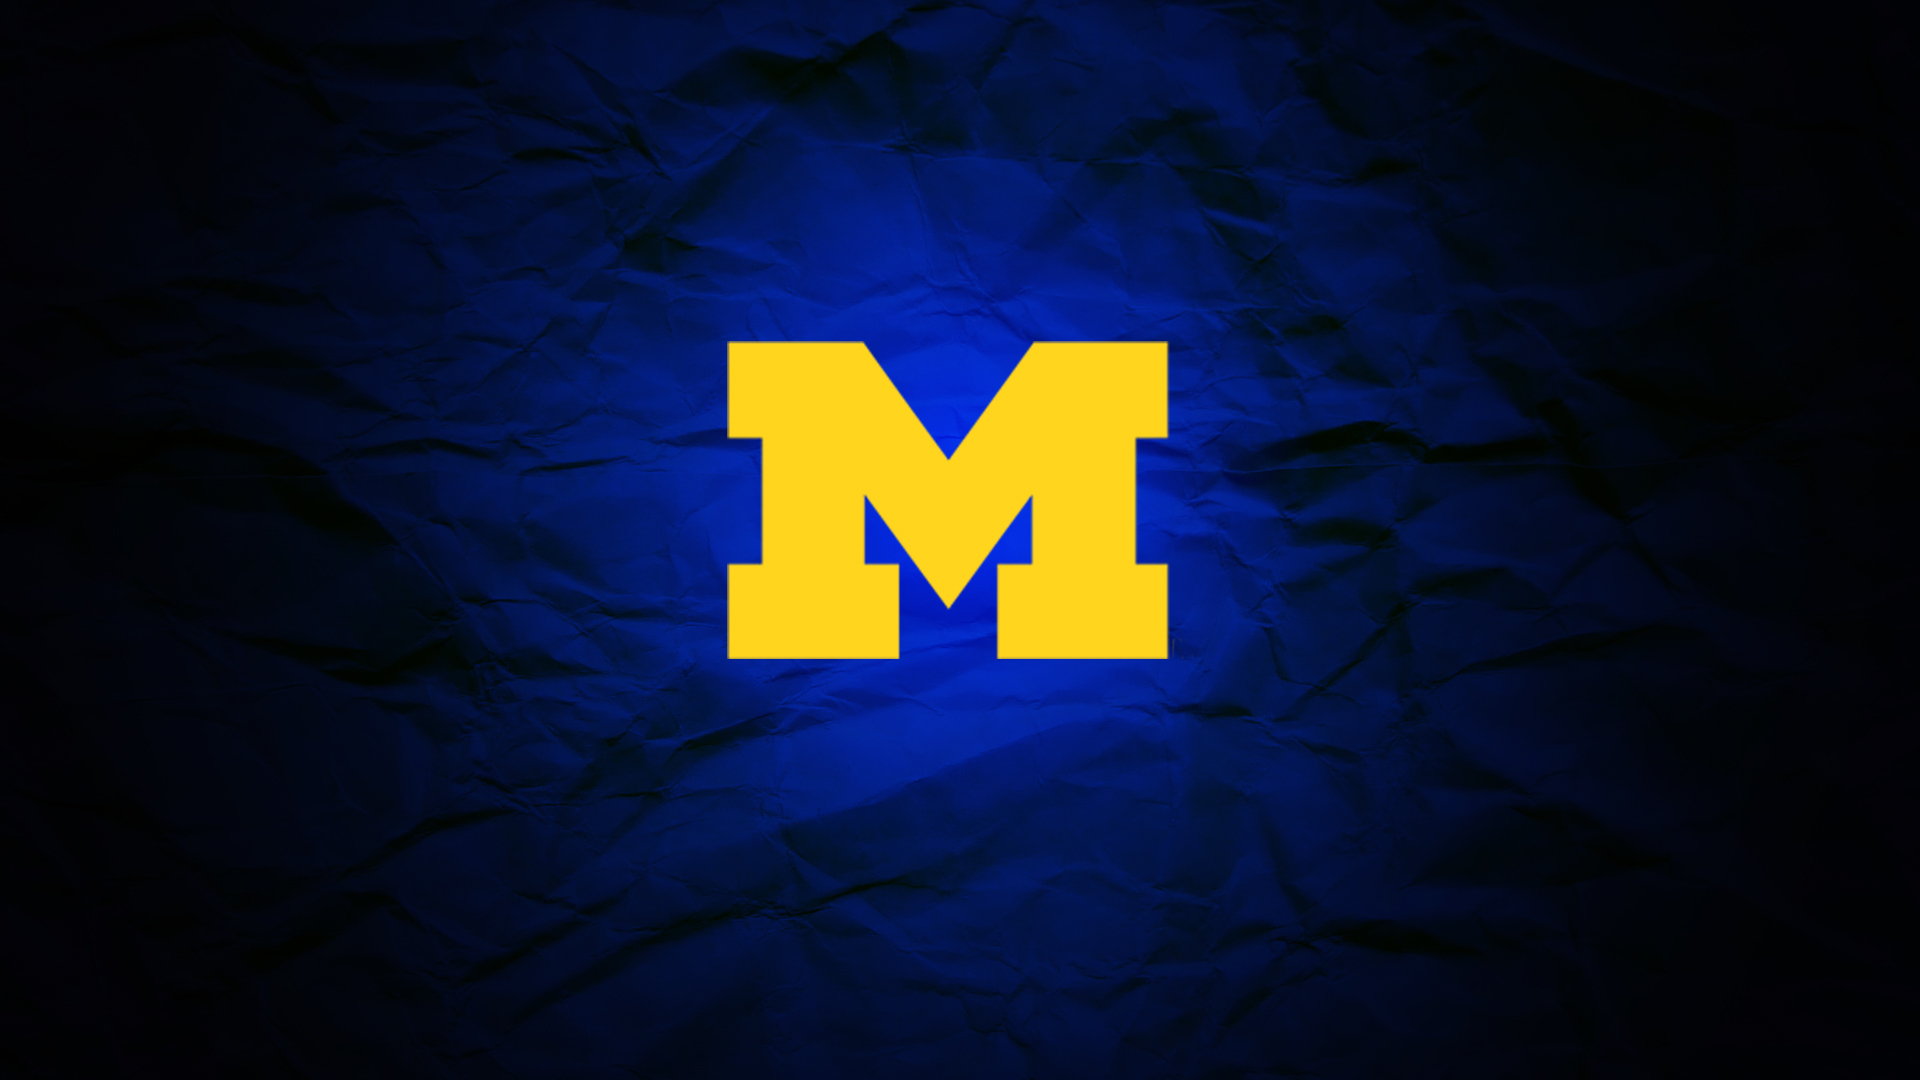 University Of Michigan Wallpaper